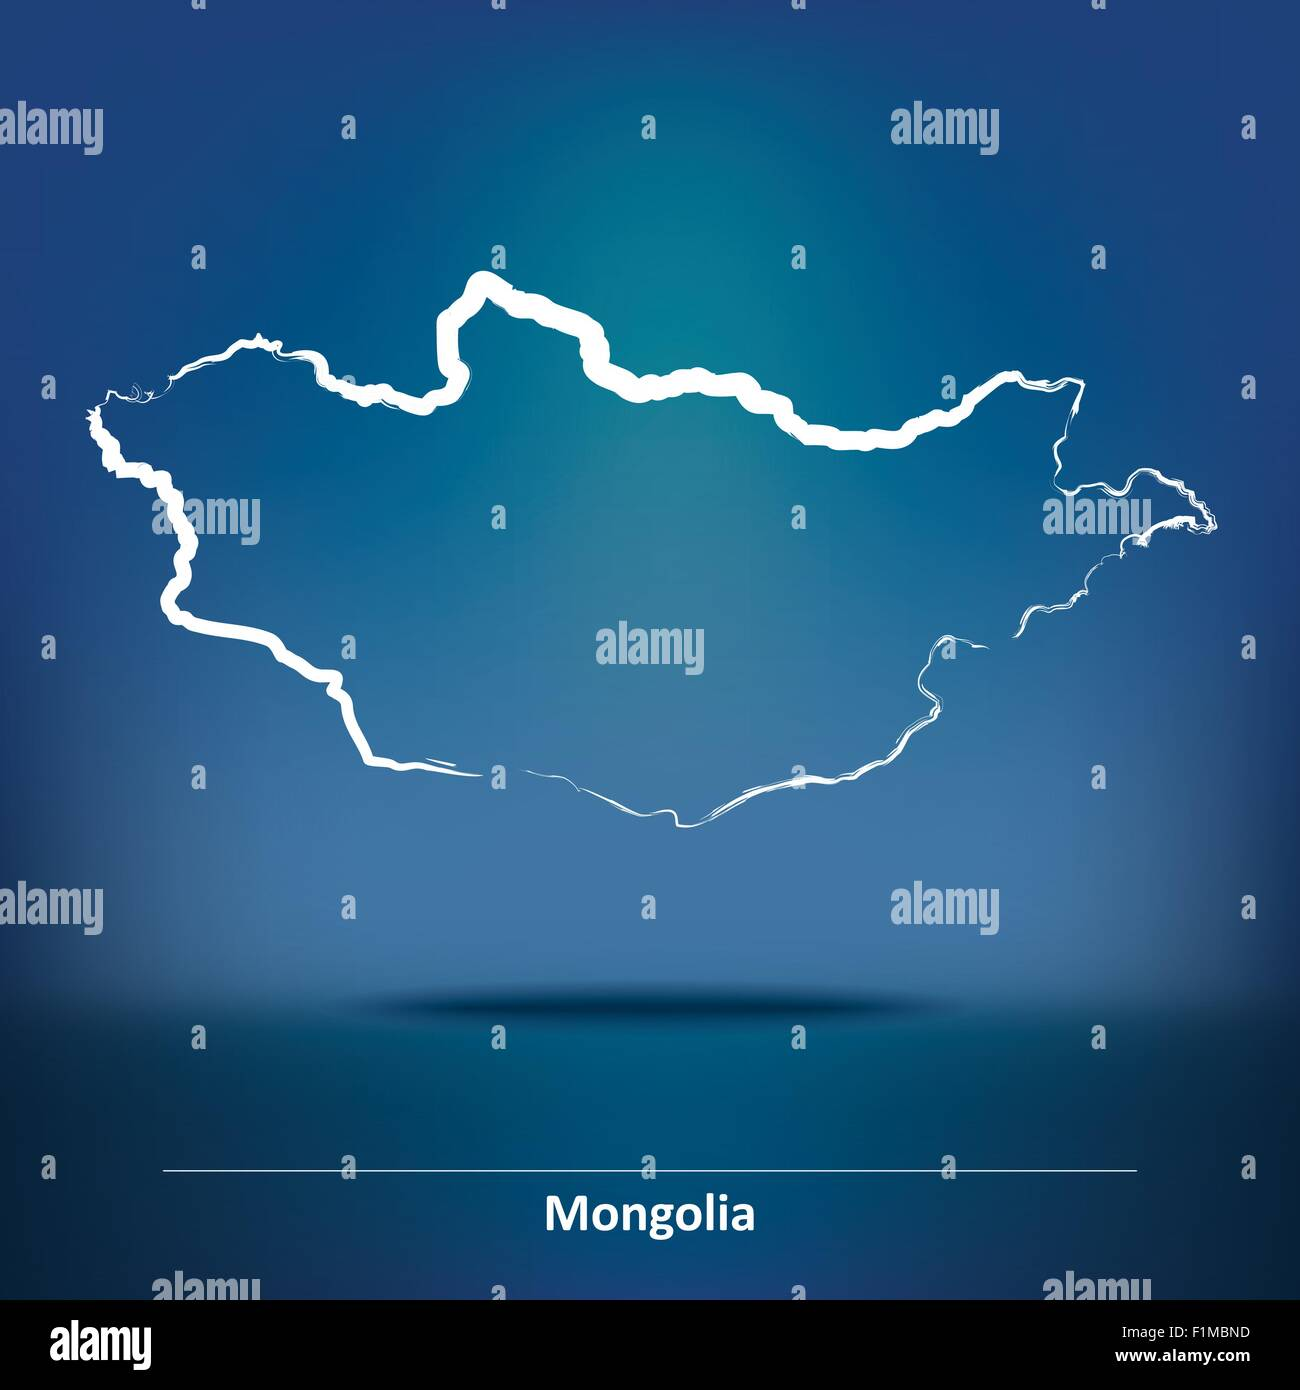 Doodle Map of Mongolia - vector illustration - Stock Vector